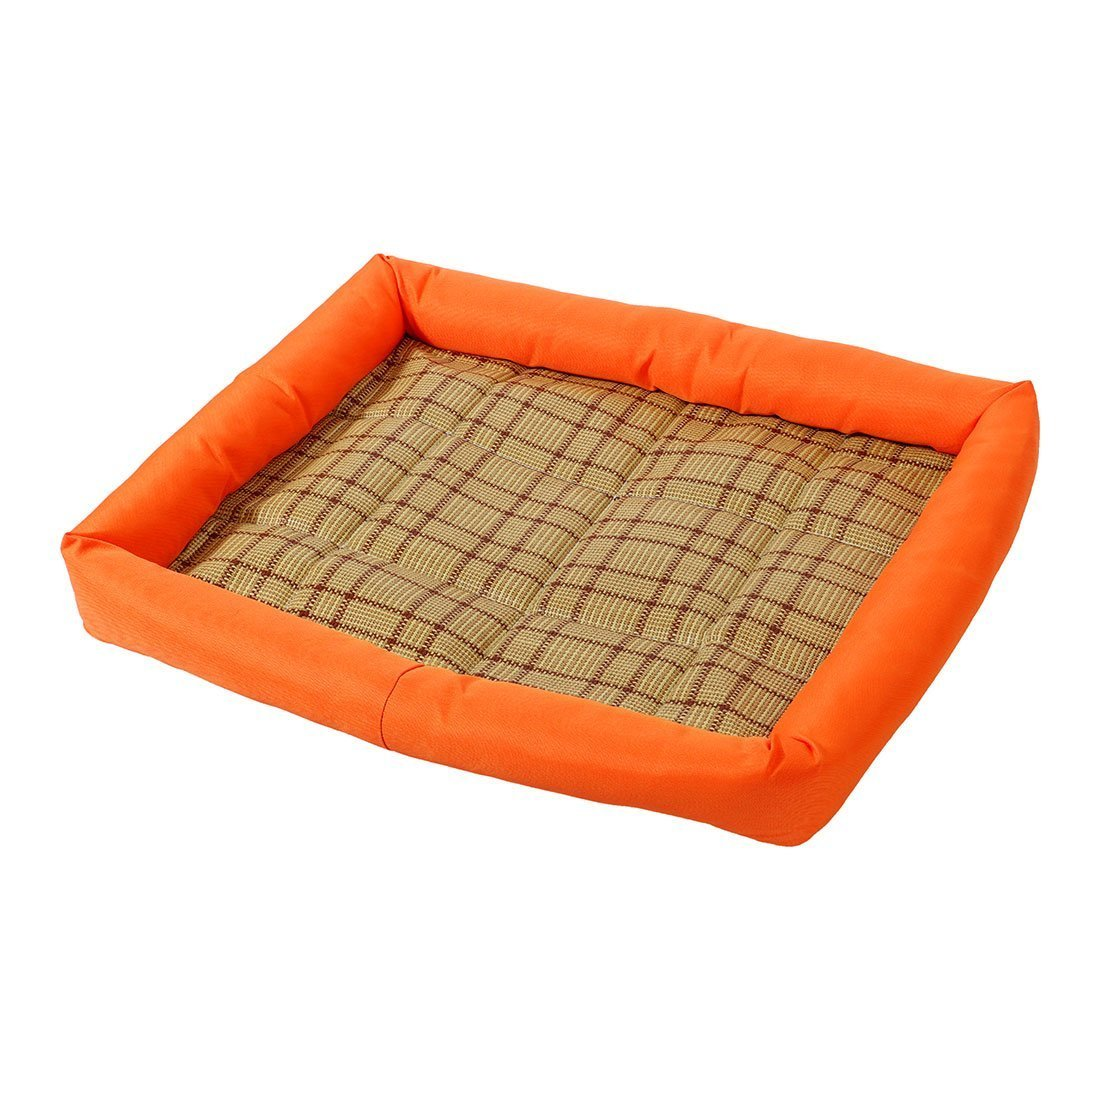 Chusea Cosy Blanket for Cat Pet Dog Cat Indoor Summer Heat Resistant Sleeping Bed Cushion Mat (orange, L)